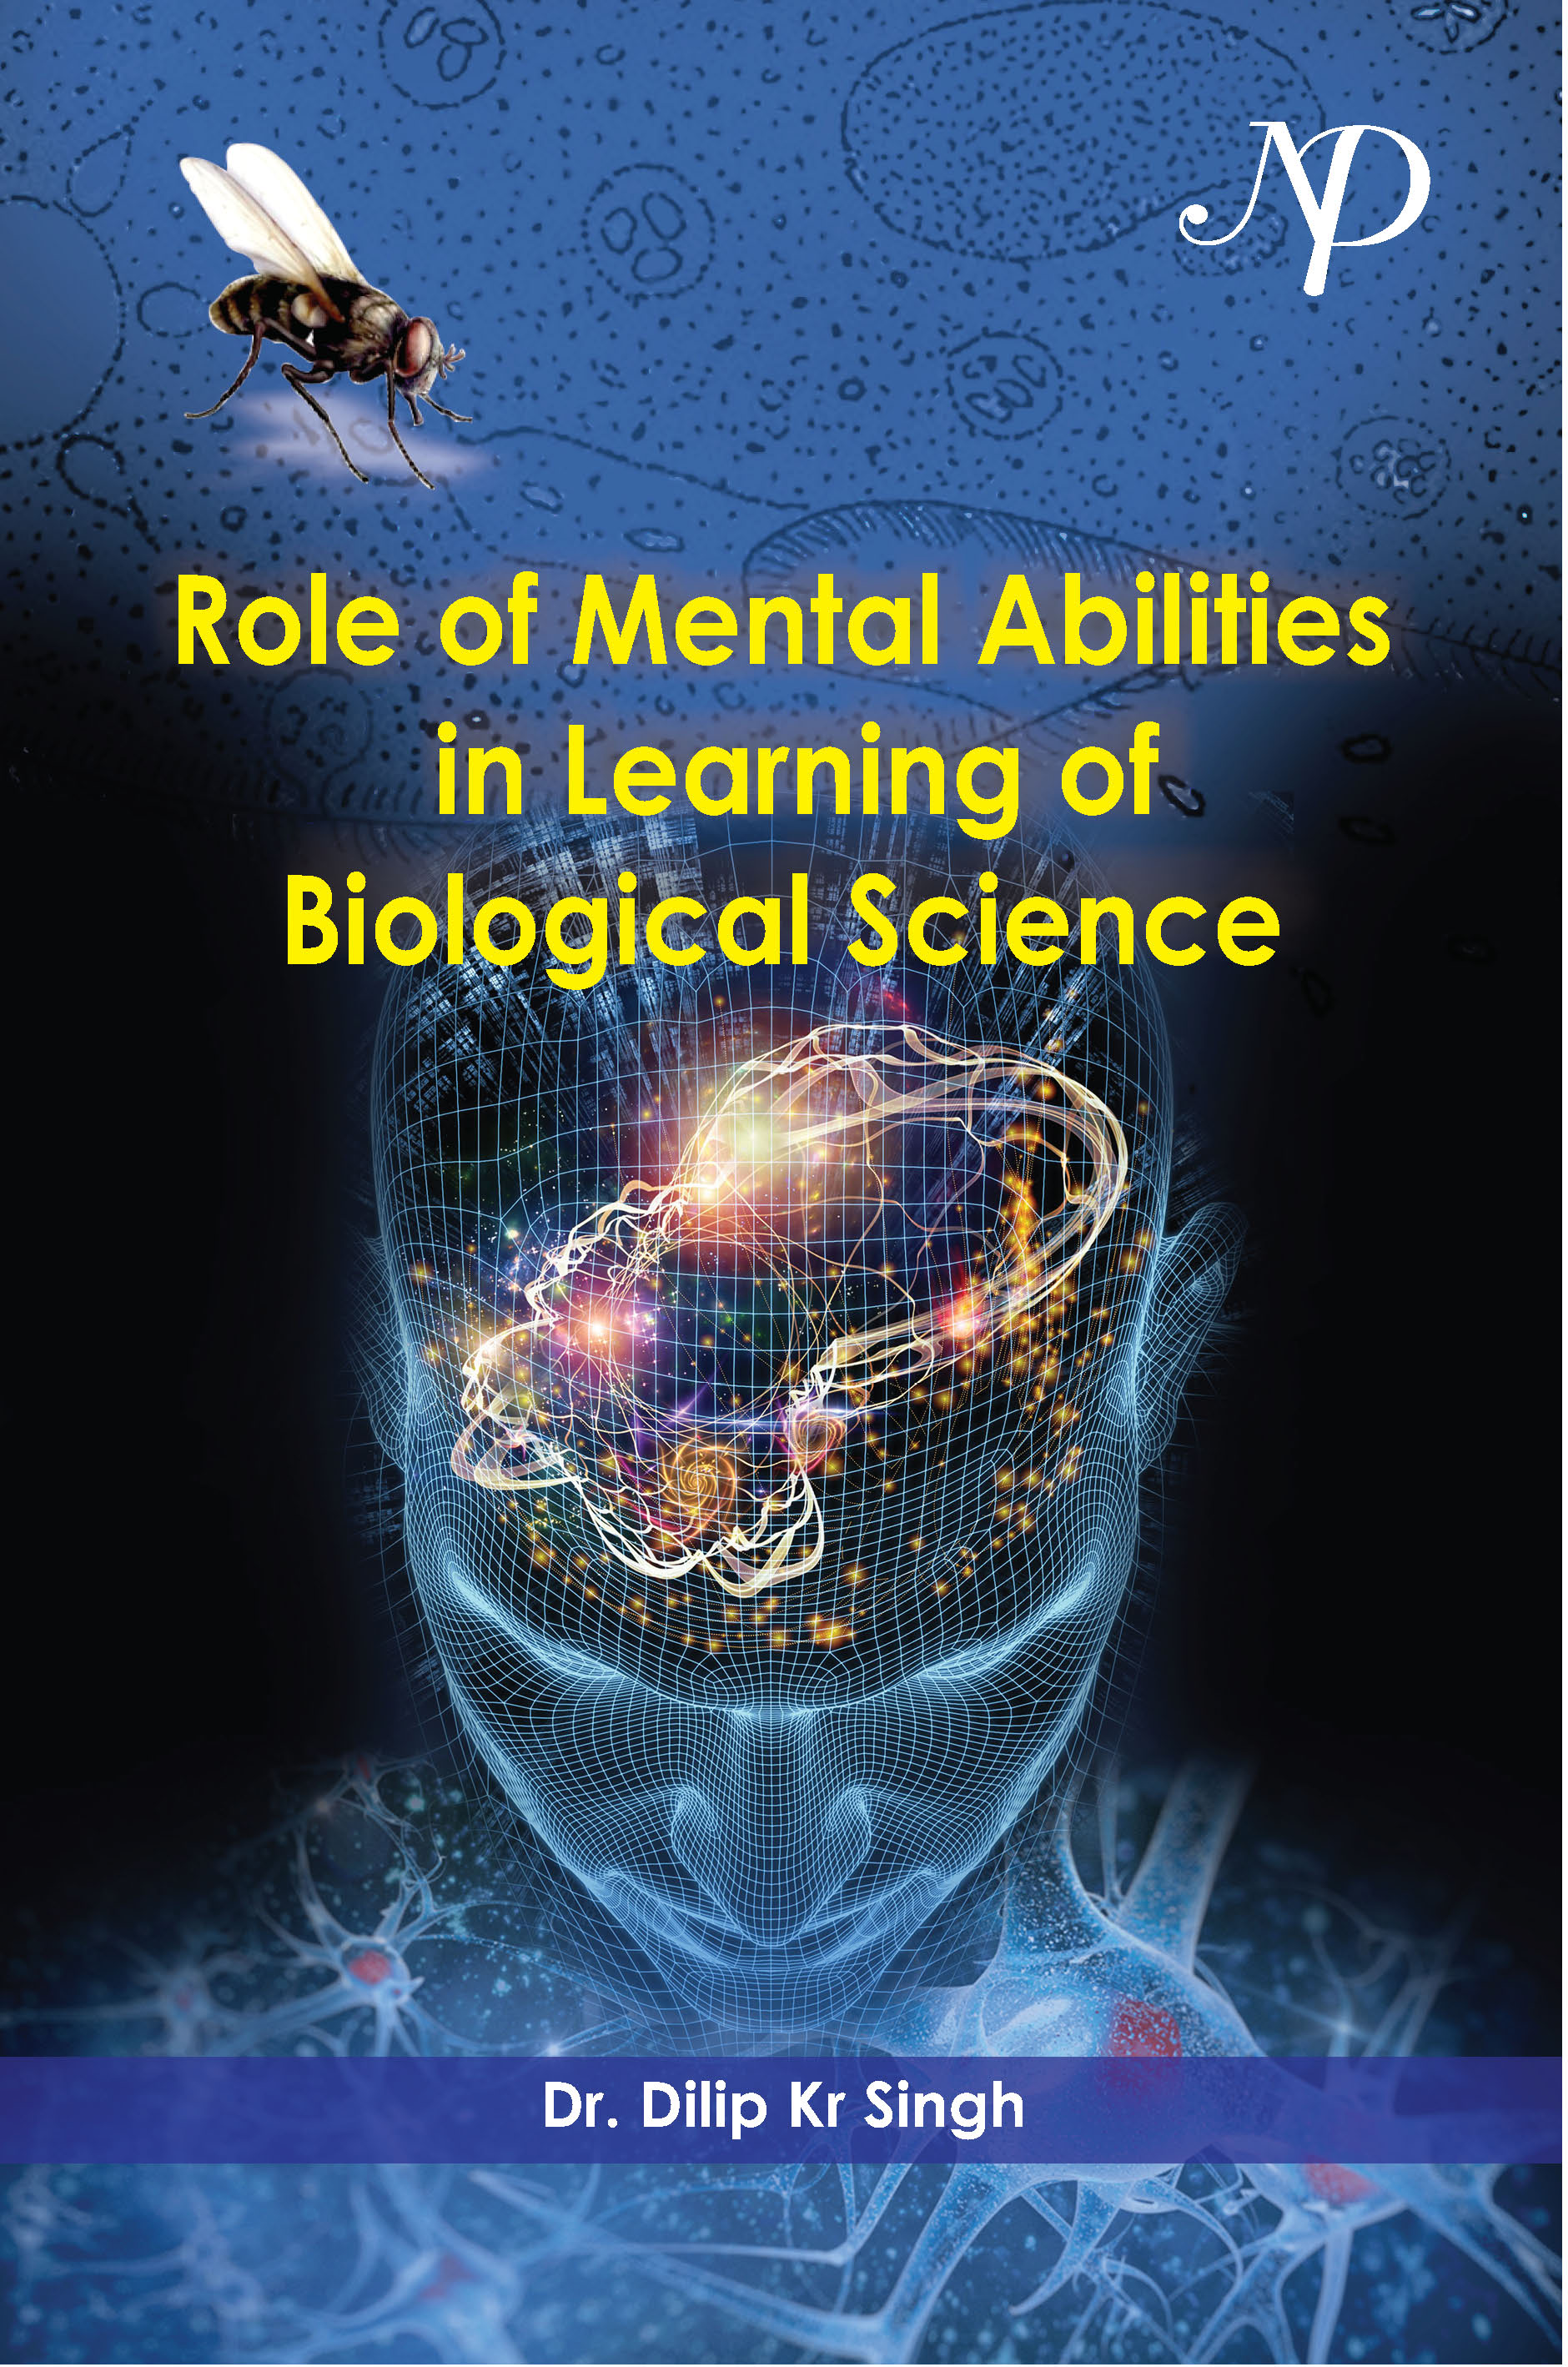 Role of mental abilities in learning of biological science Cover.jpg